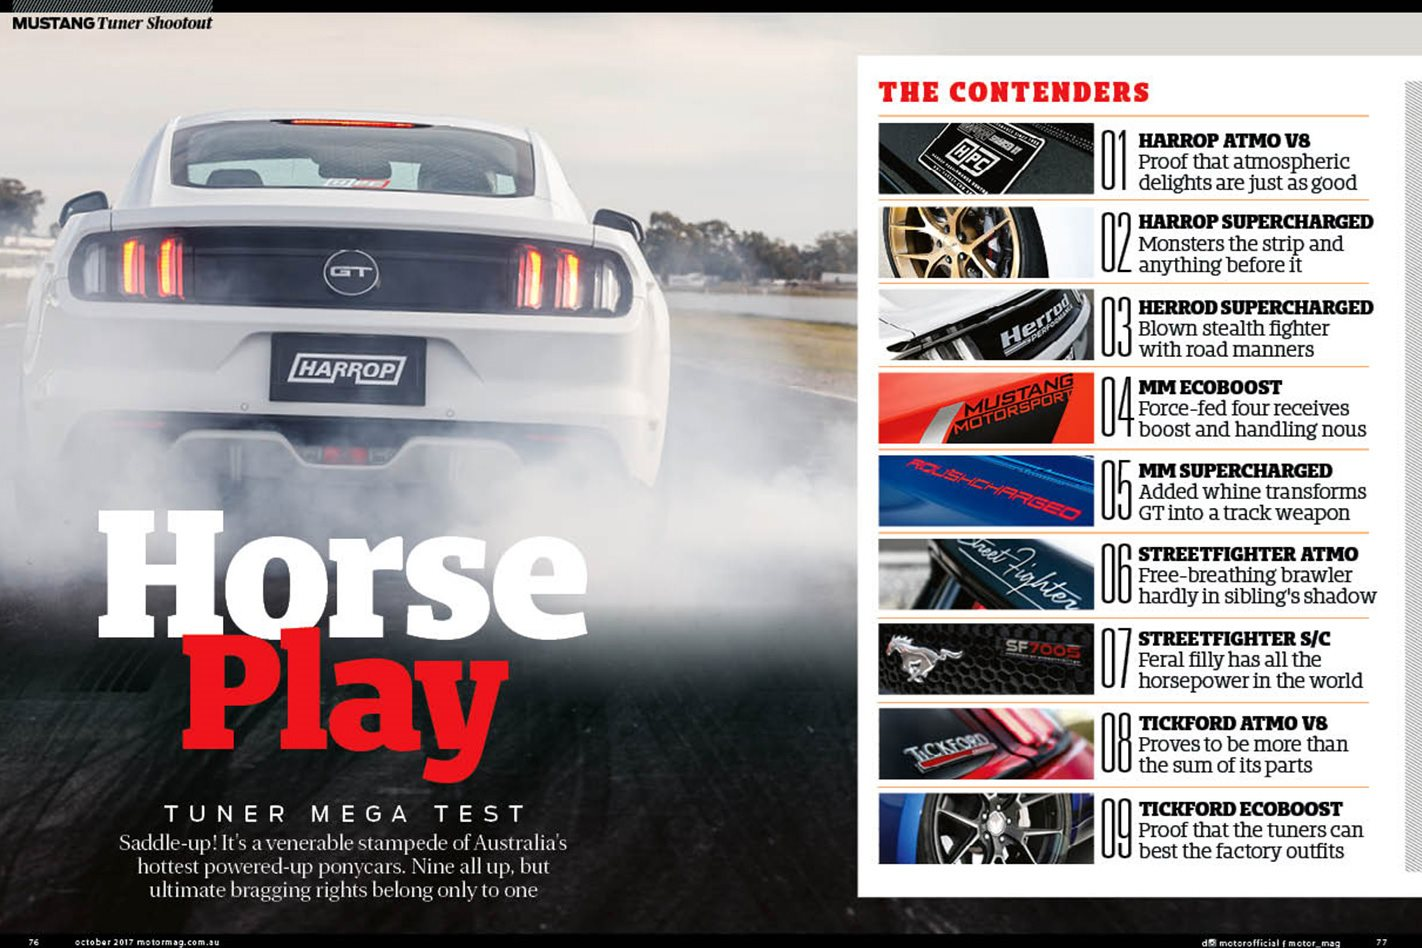 Mustang-Tuner-shootout-October-MOTOR-Issue.jpg